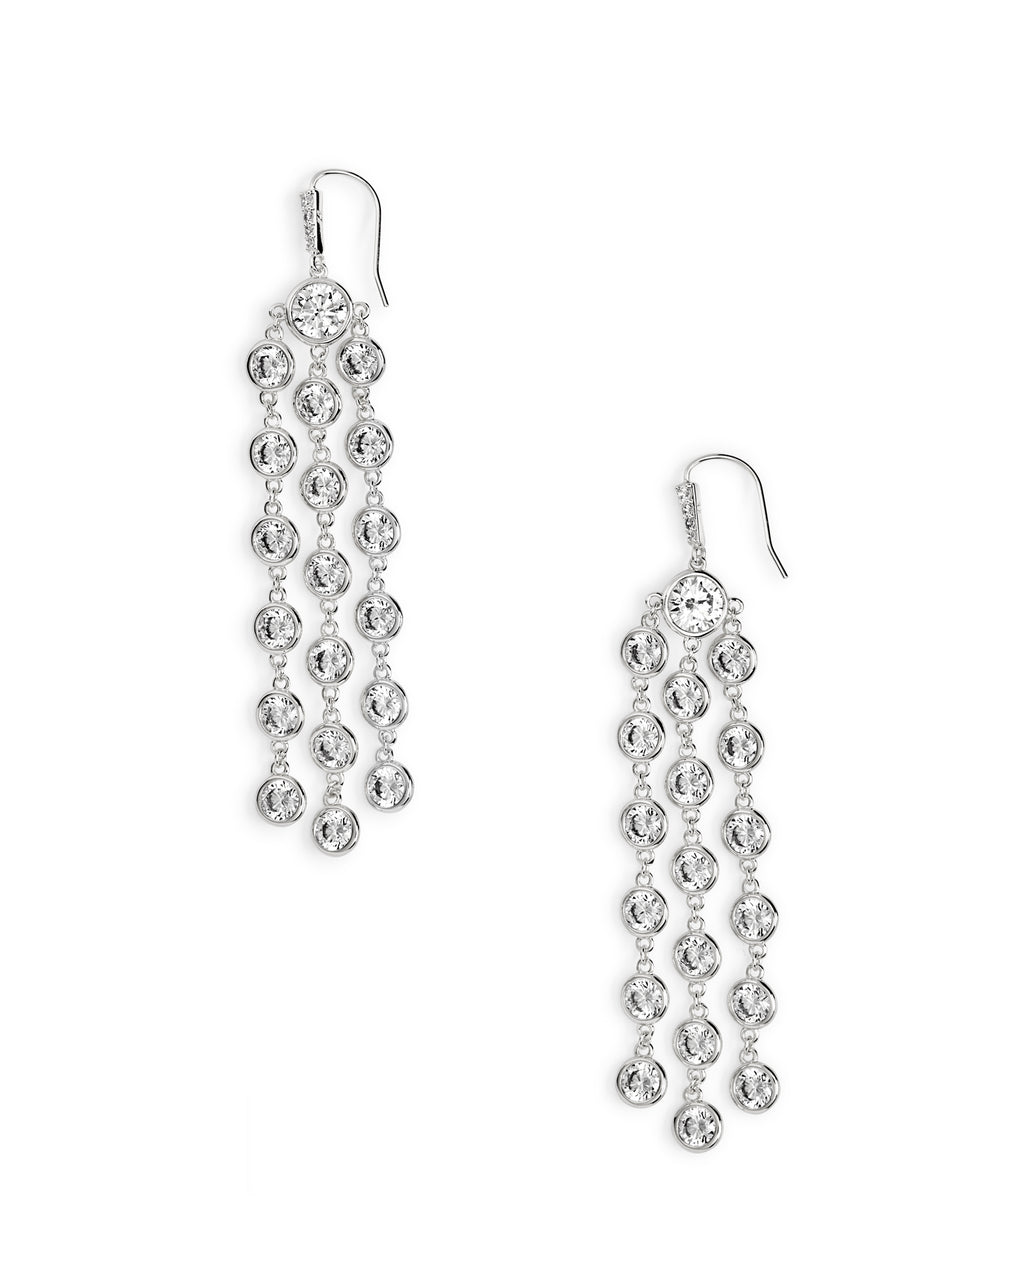 Daya Statement Earrings in Silver